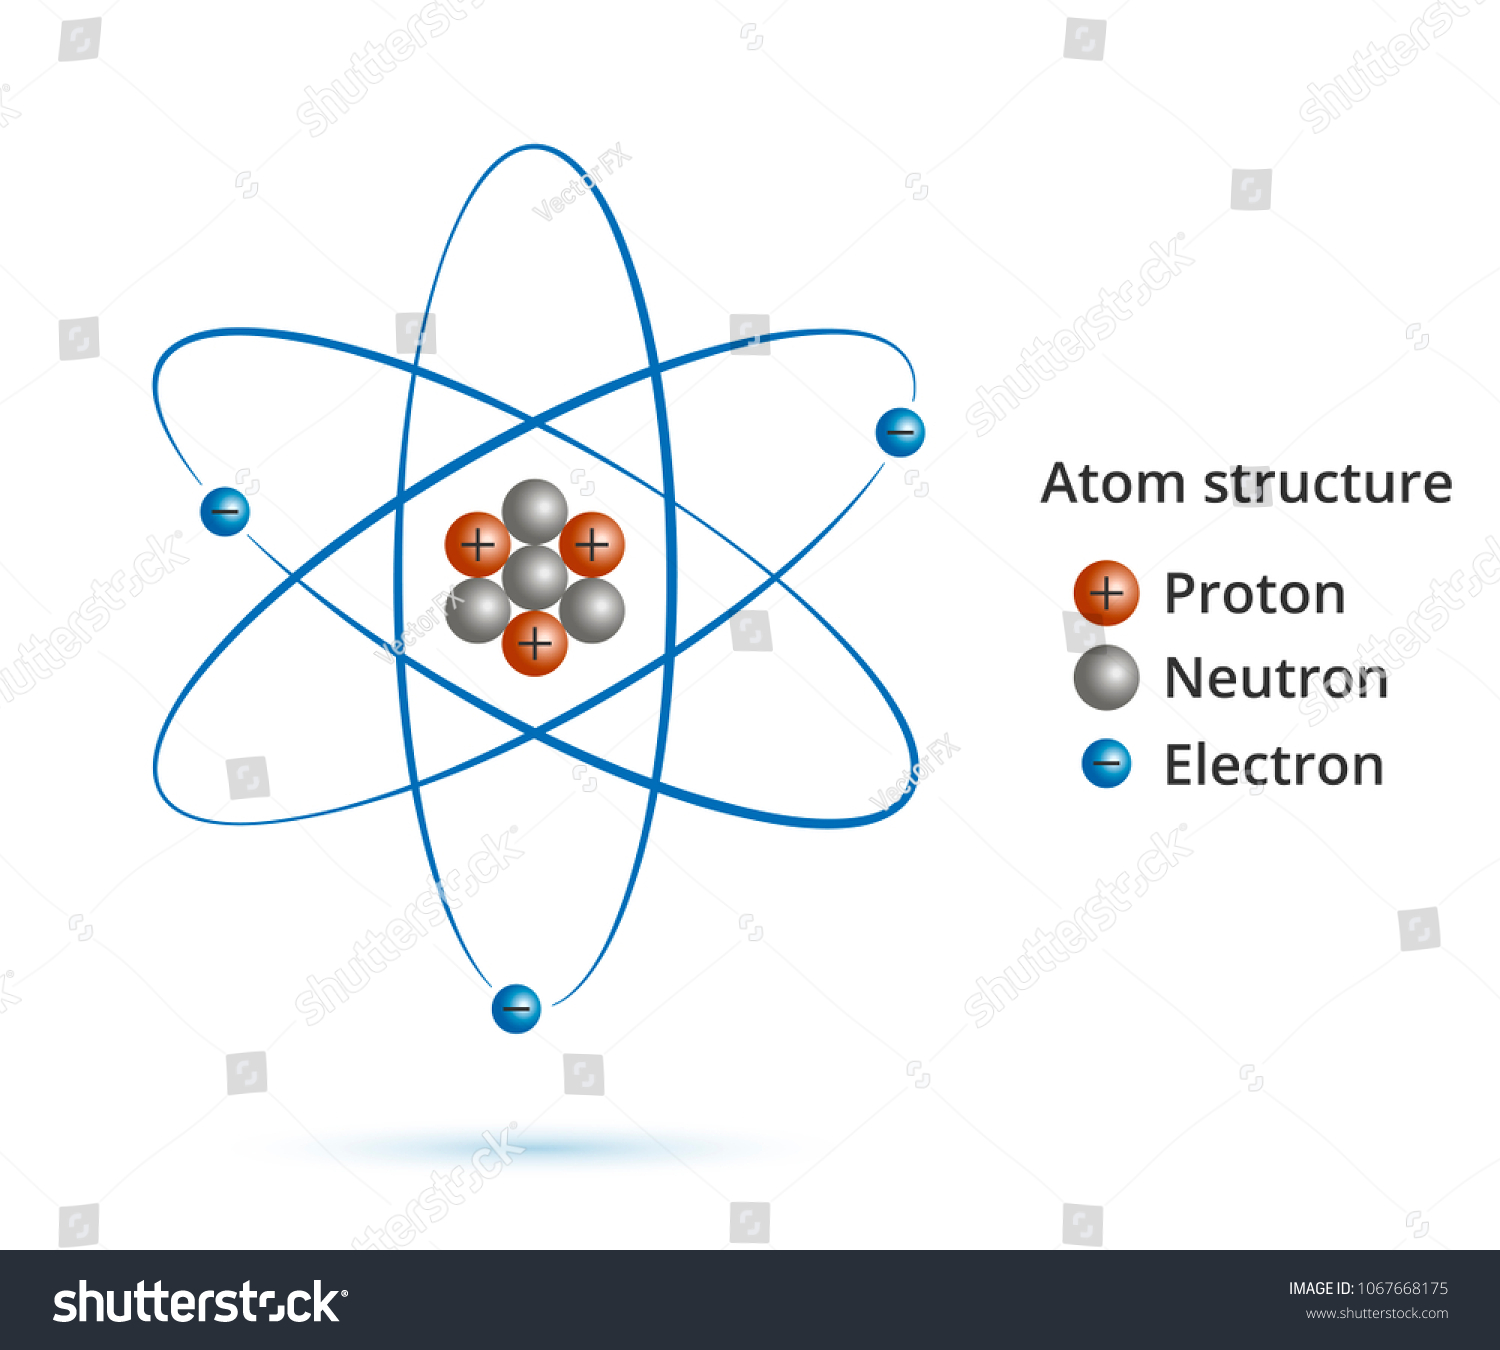 Atom scientific poster atomic structure nucleus stock vector atom scientific poster with atomic structure nucleus of protons and neutrons orbital electrons ccuart Images